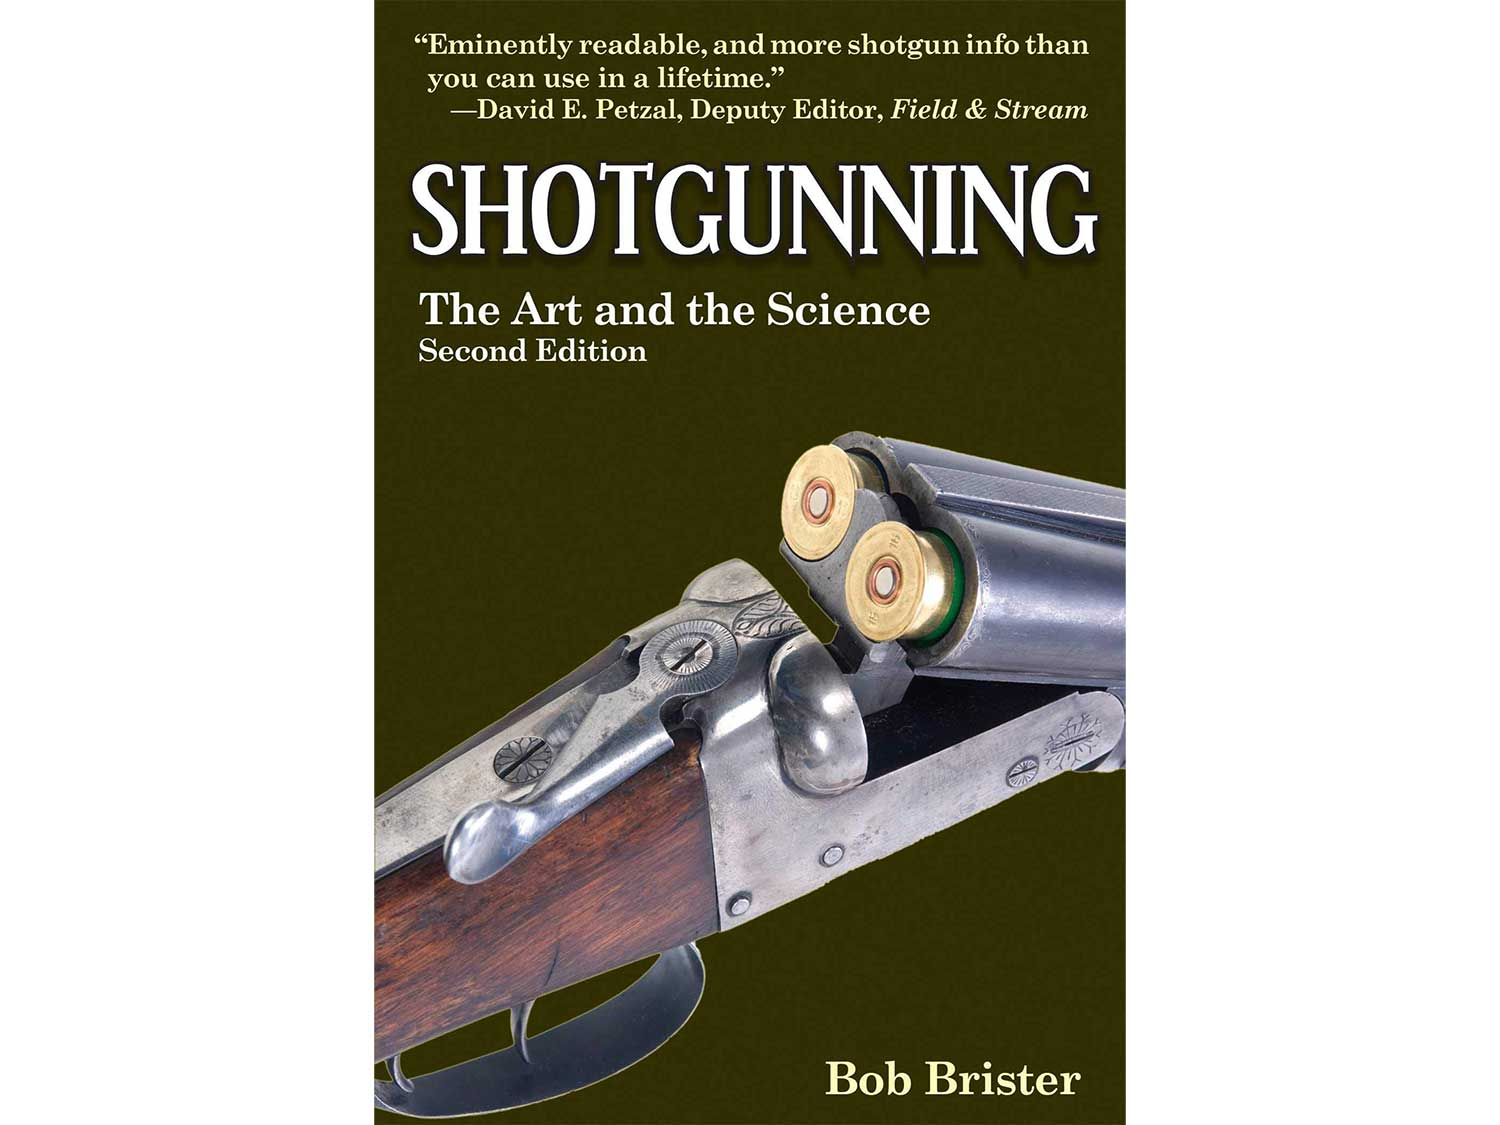 Shotgunning: The Art and the Science, by Bob Brister